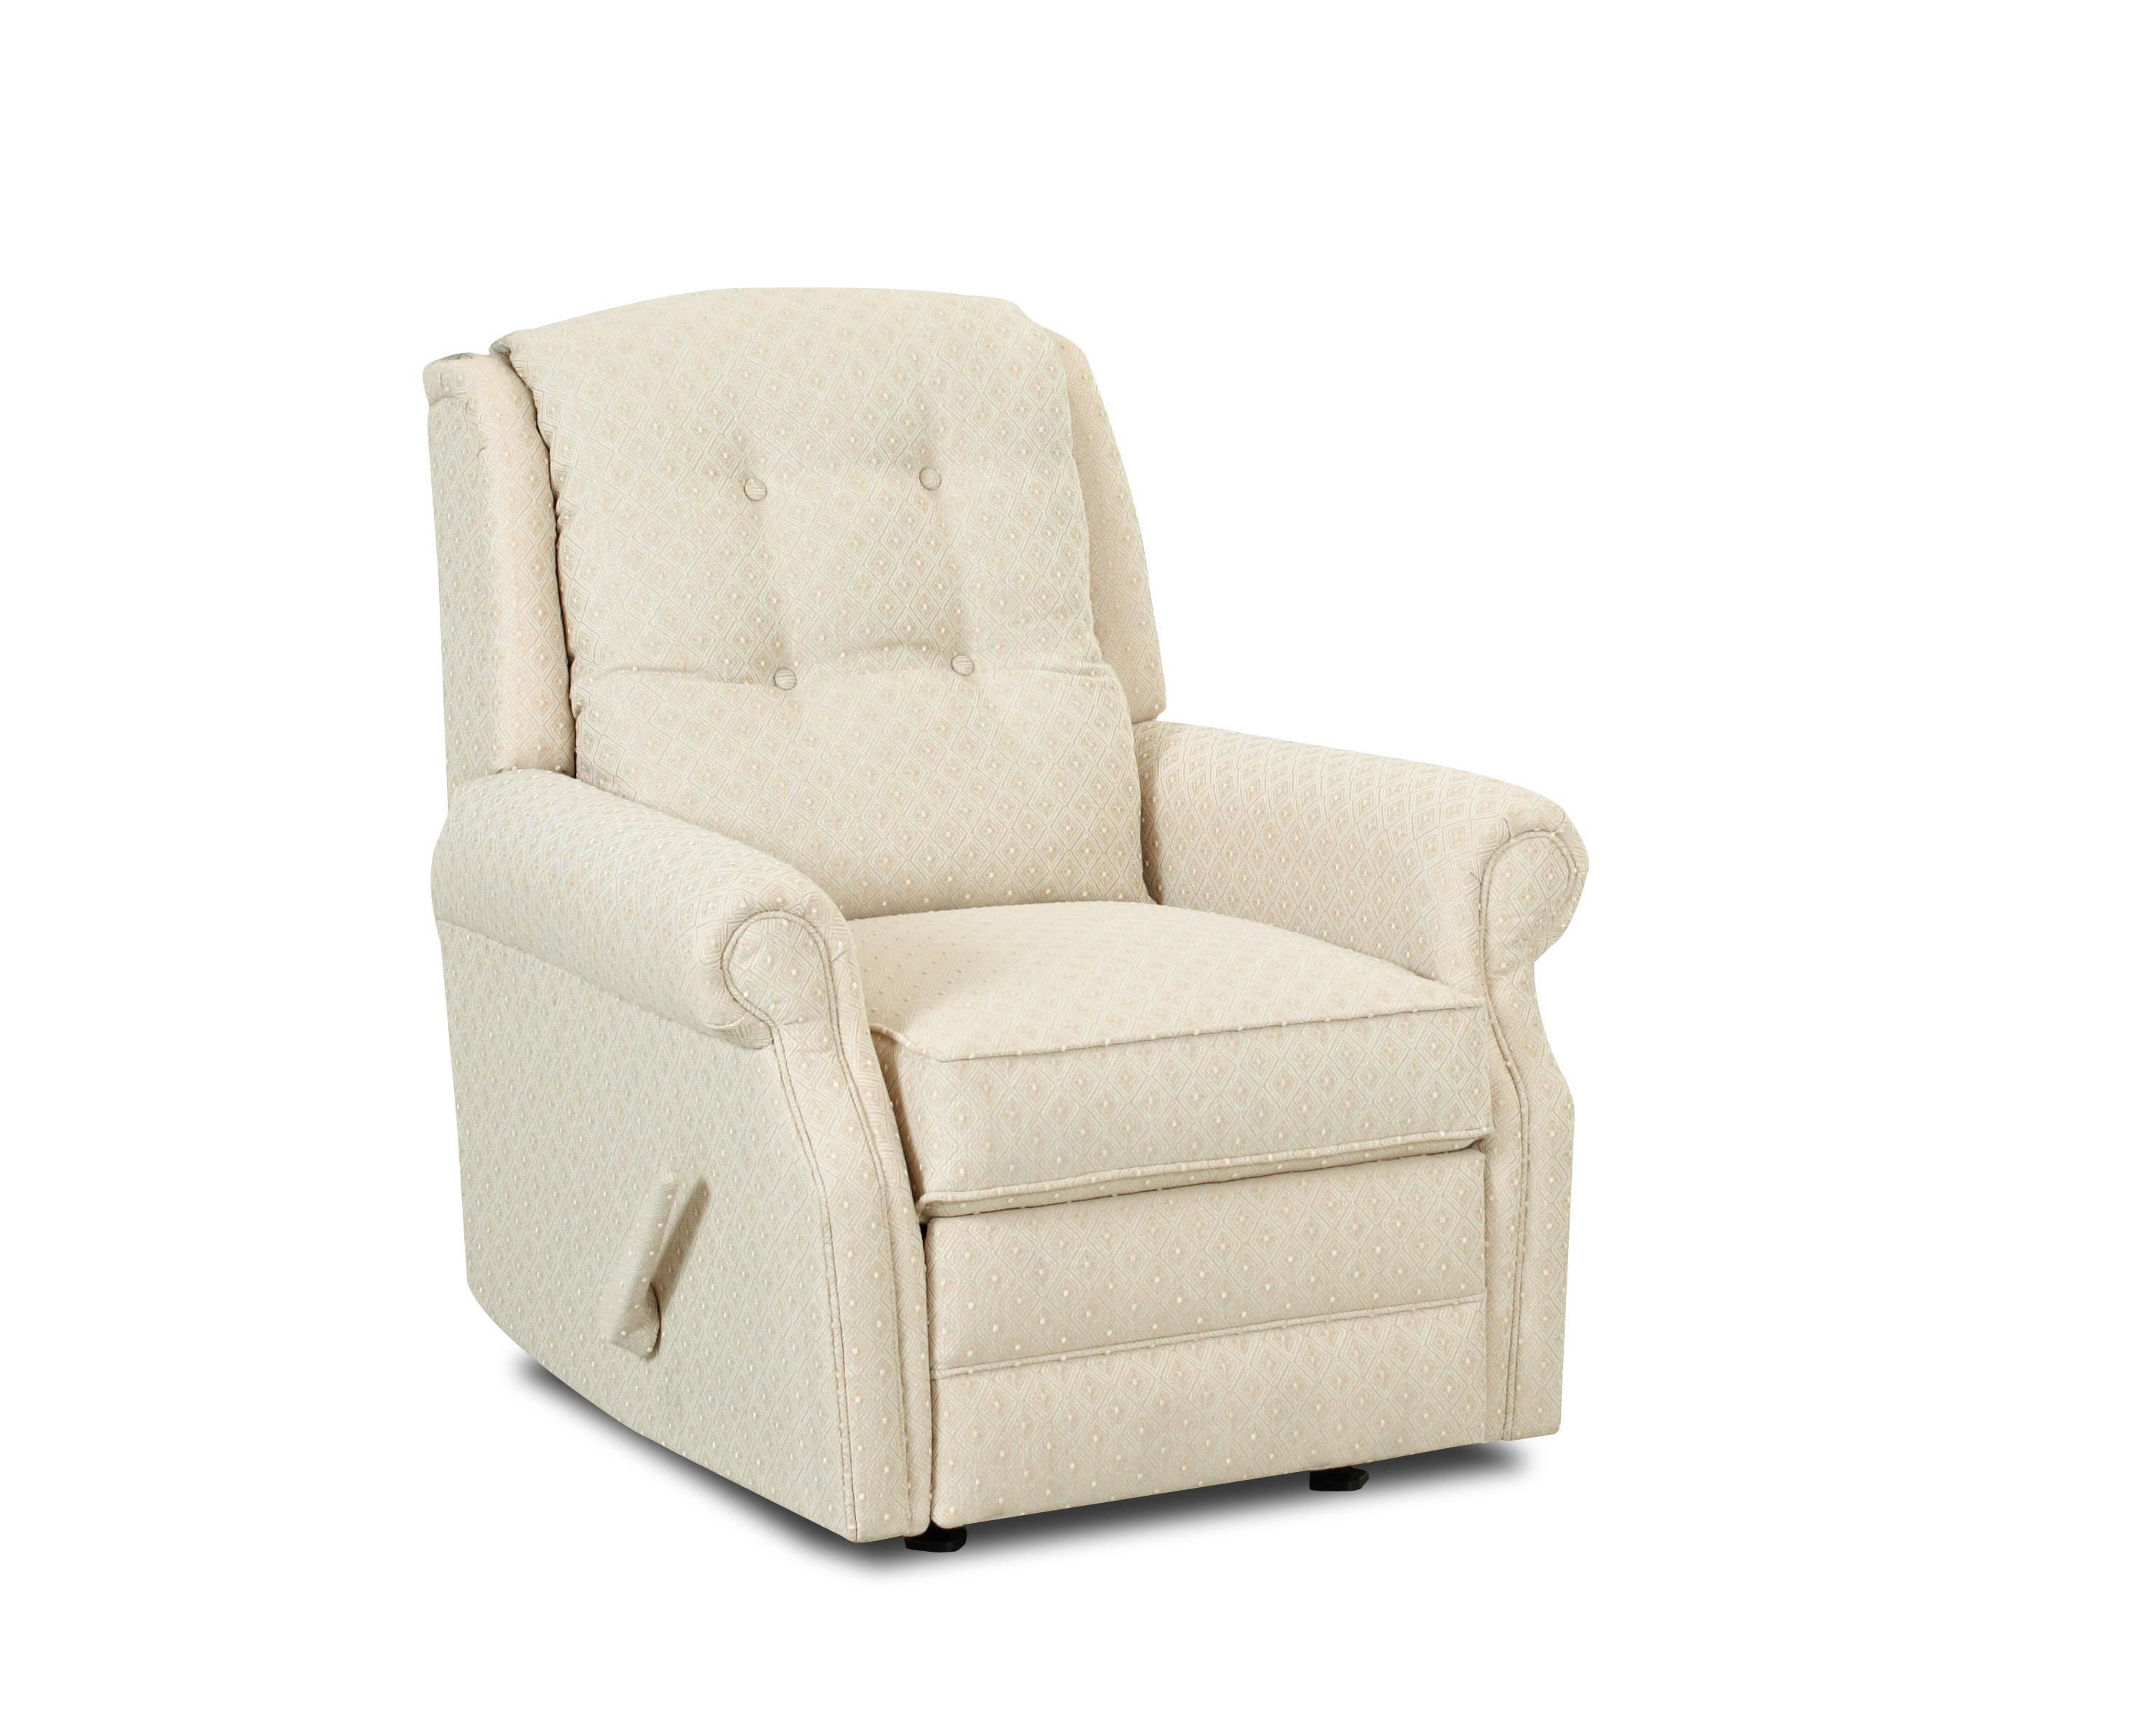 swivel chair operations beach lounger klaussner sand key 57603h srrc transitional manual